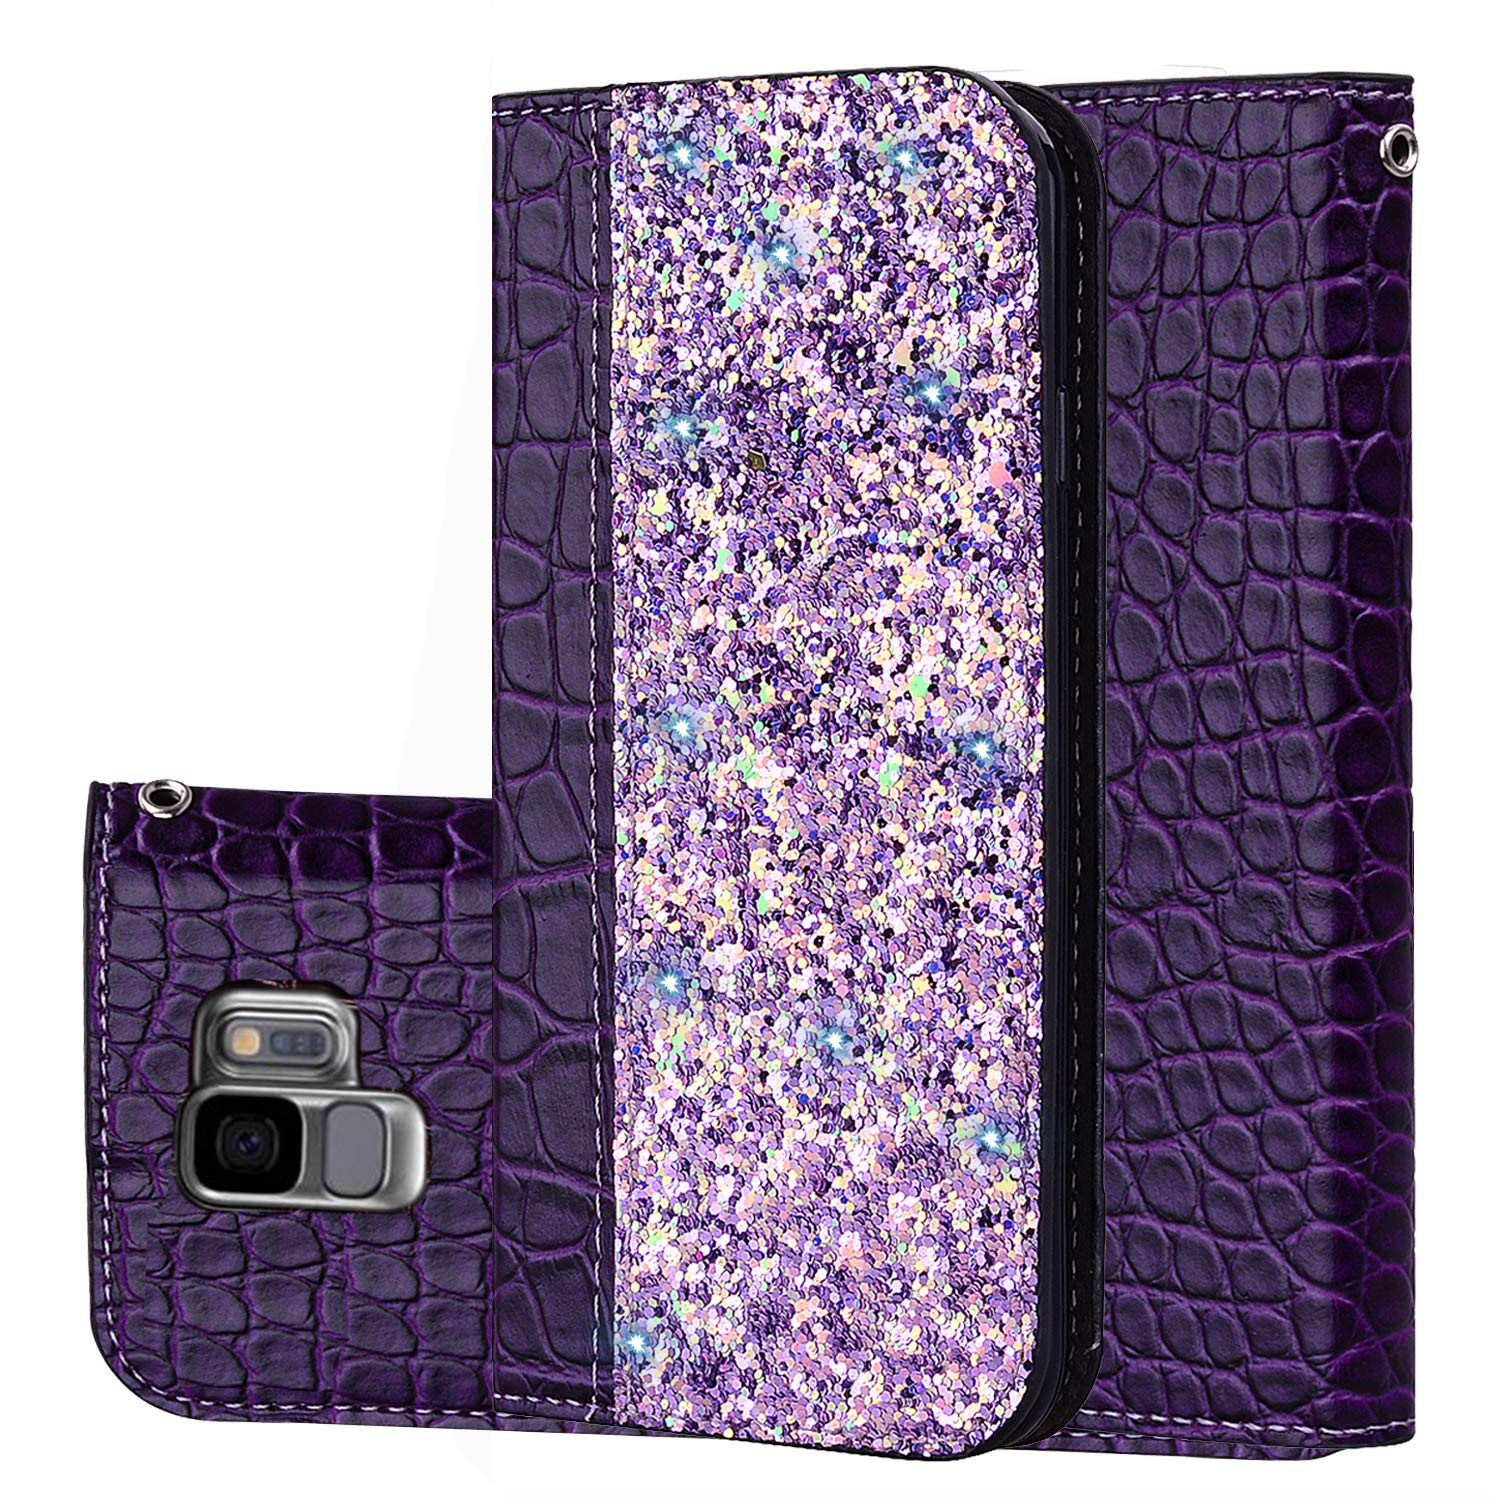 Kucosy Glitter Case for Galaxy S9, Luxury Bling Glitter PU Leather Wallet Case Ladies Girls Sparkle Flip Folio Cover Bumper Case Backcover Soft Flex TPU Inner Shockproof Case for Galaxy S9 (Purple)